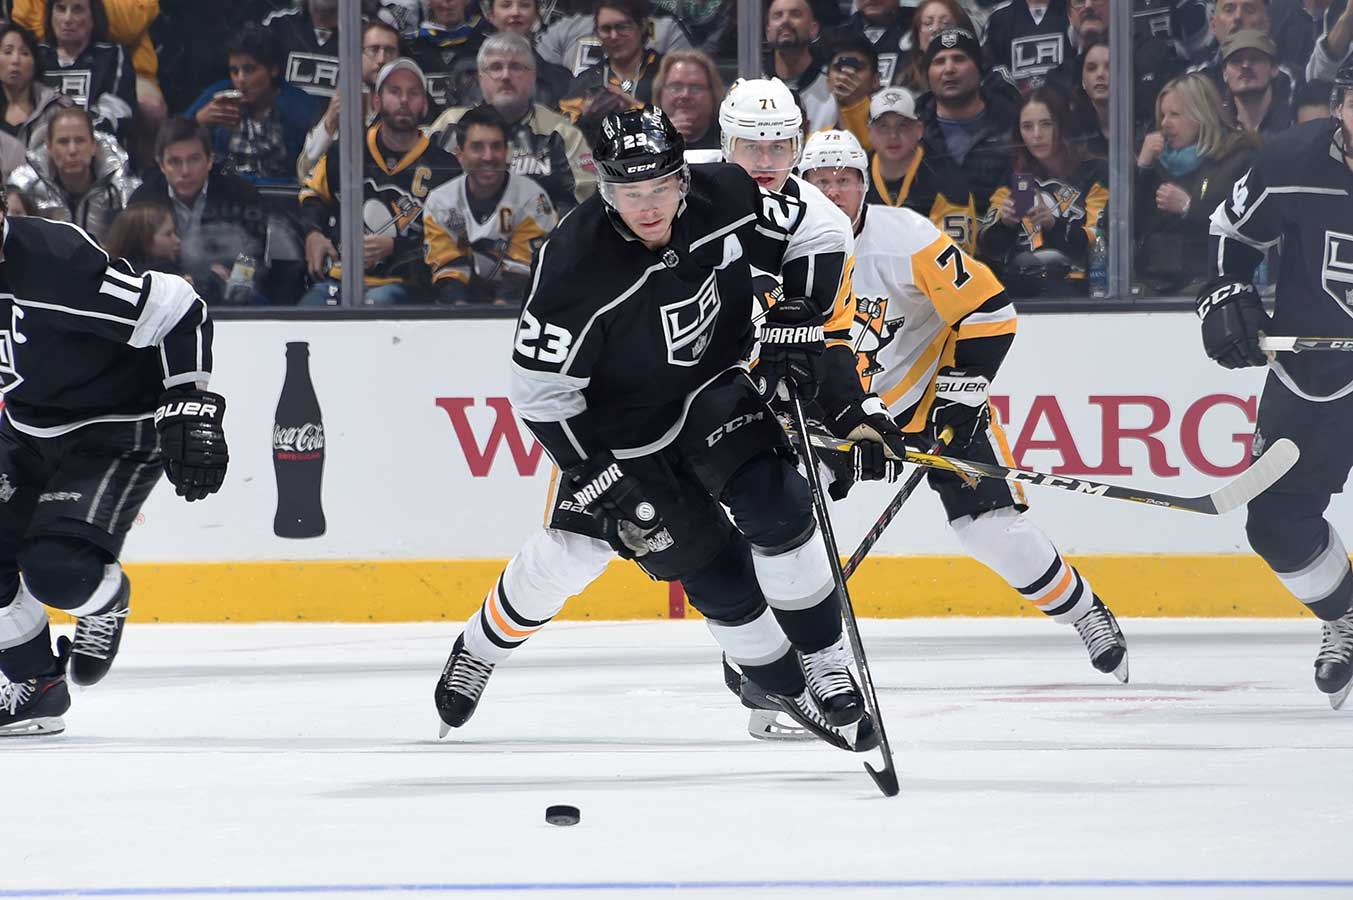 Dustin-brown-pittsburgh-penguins-postgame-quotes-boarding-major